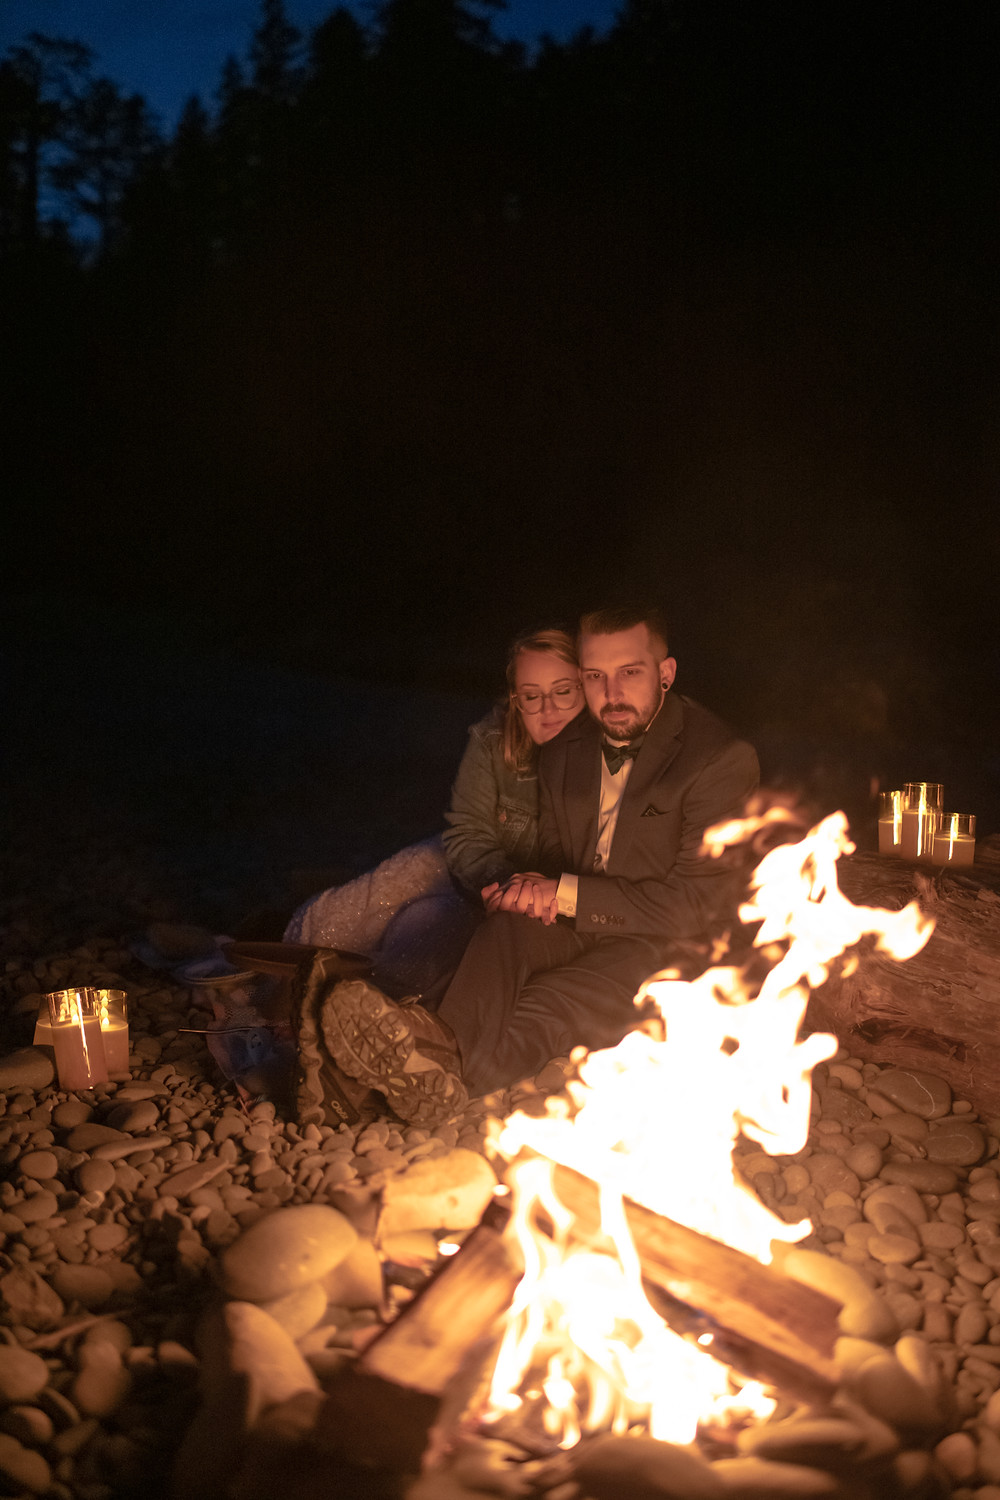 A couple on their elopement day in Olympic National Park sharing a campfire on the beach